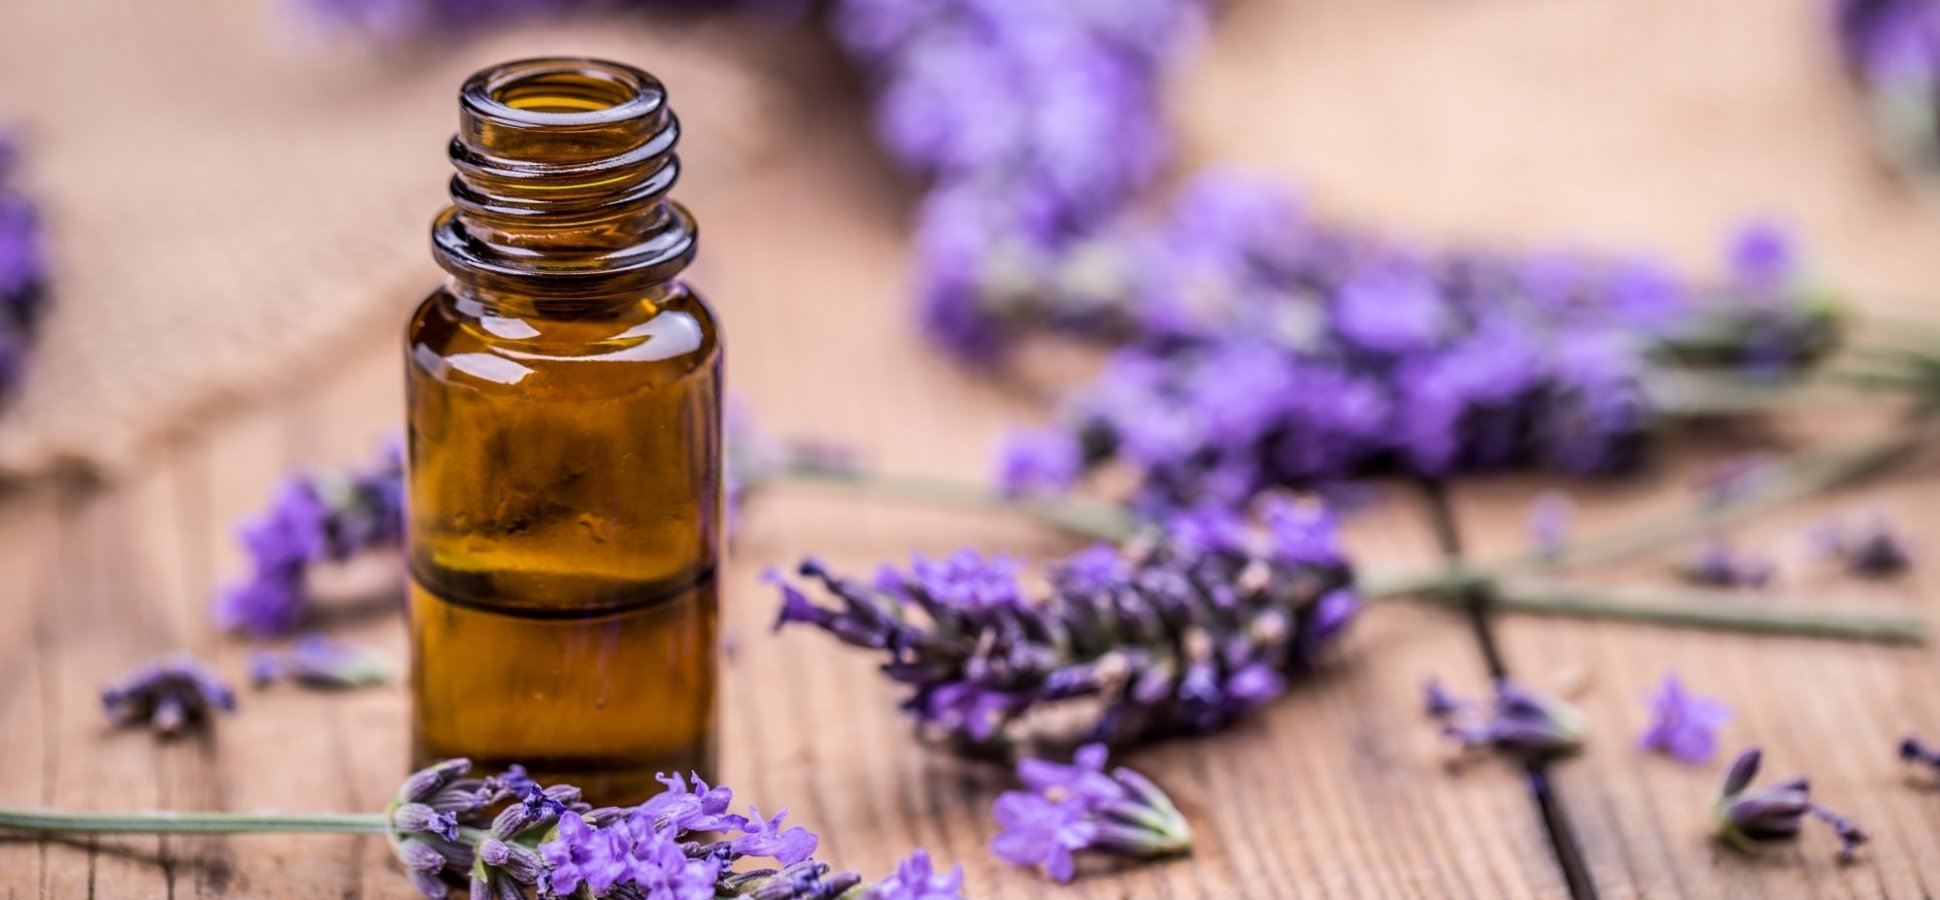 Scent of Success: Studies Show Aromatherapy Can Boost Your Memory and Focus